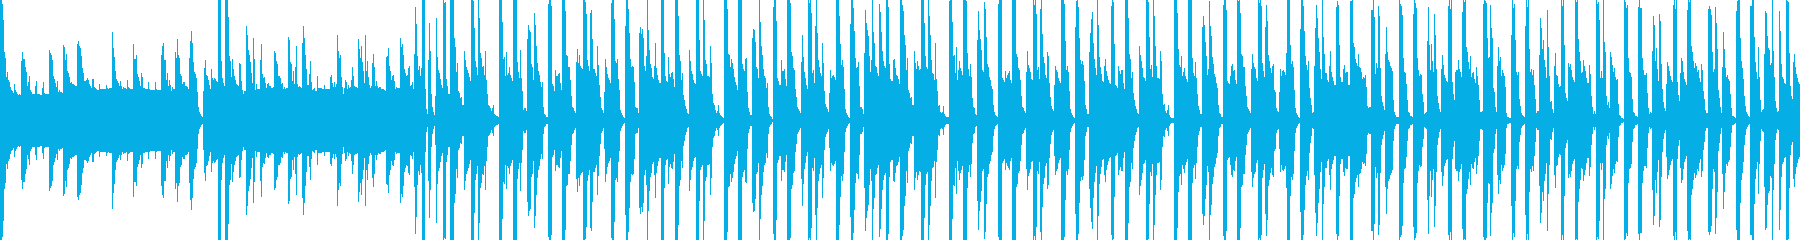 Play in the woods (Loop compatible)'s reproduced waveform